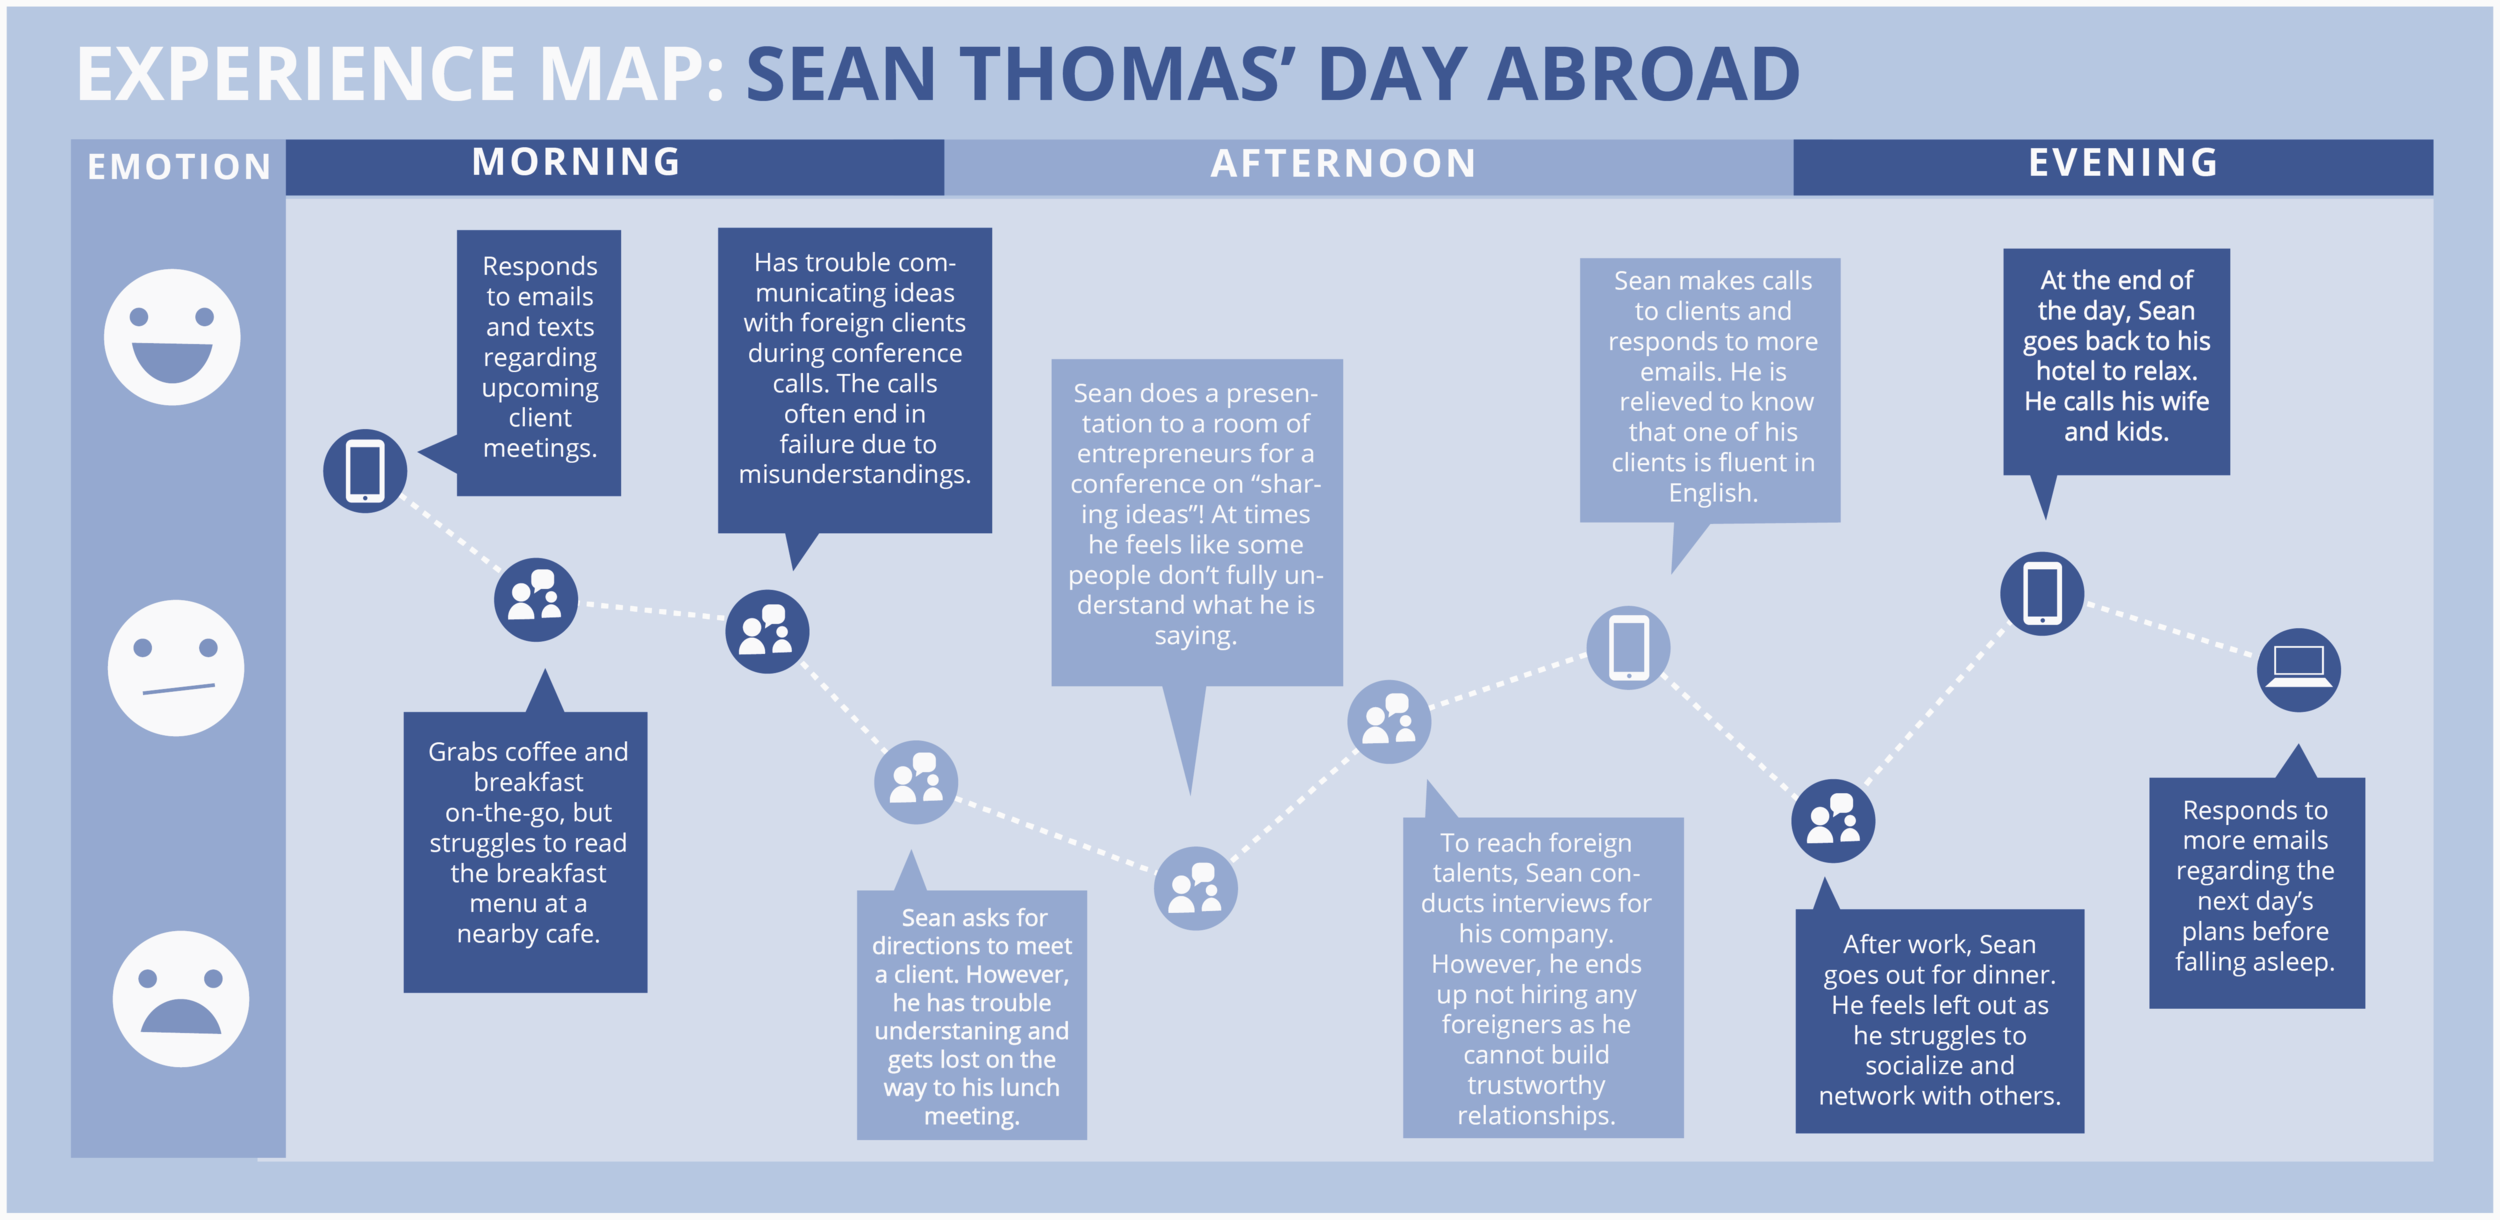 An illustration of Sean's mood throughout his typical work day in a foreign country. His mood dips more during interactions with others who do not speak the same language as him.